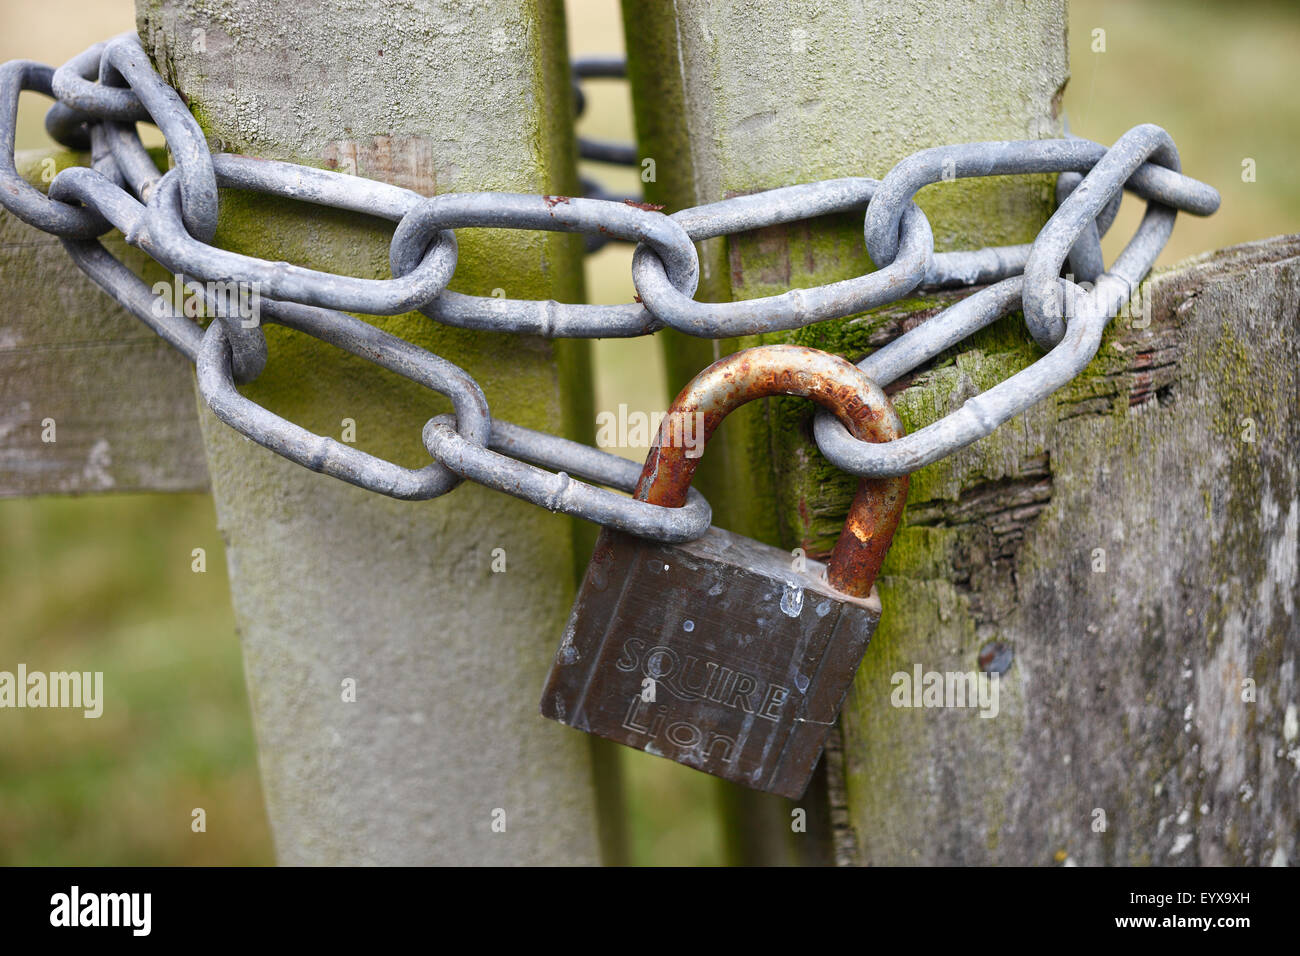 Padlock and chains keeping a gate shut. - Stock Image